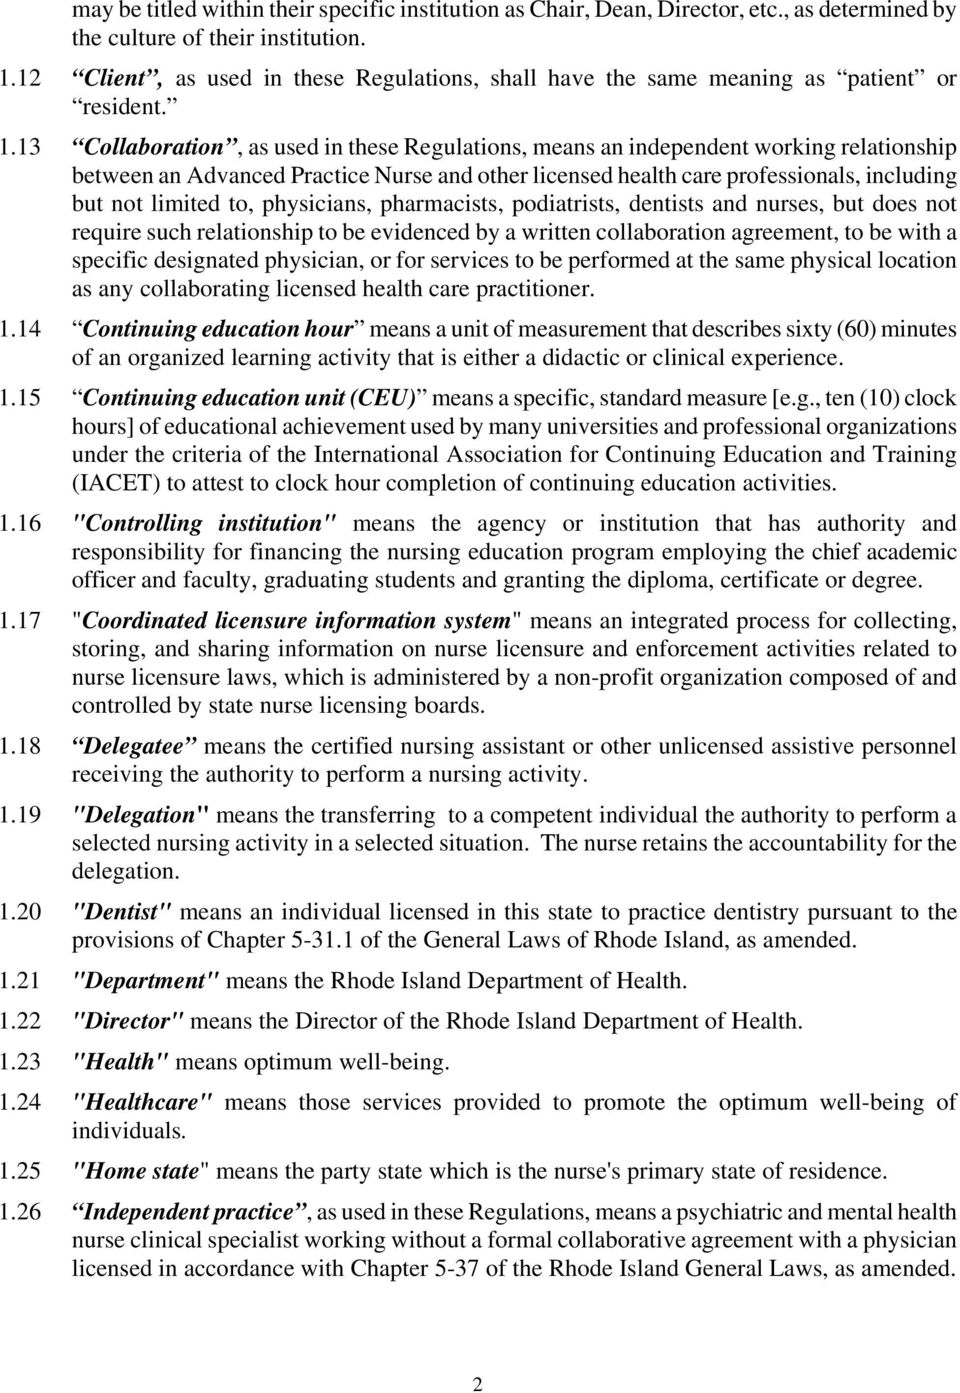 13 Collaboration, as used in these Regulations, means an independent working relationship between an Advanced Practice Nurse and other licensed health care professionals, including but not limited